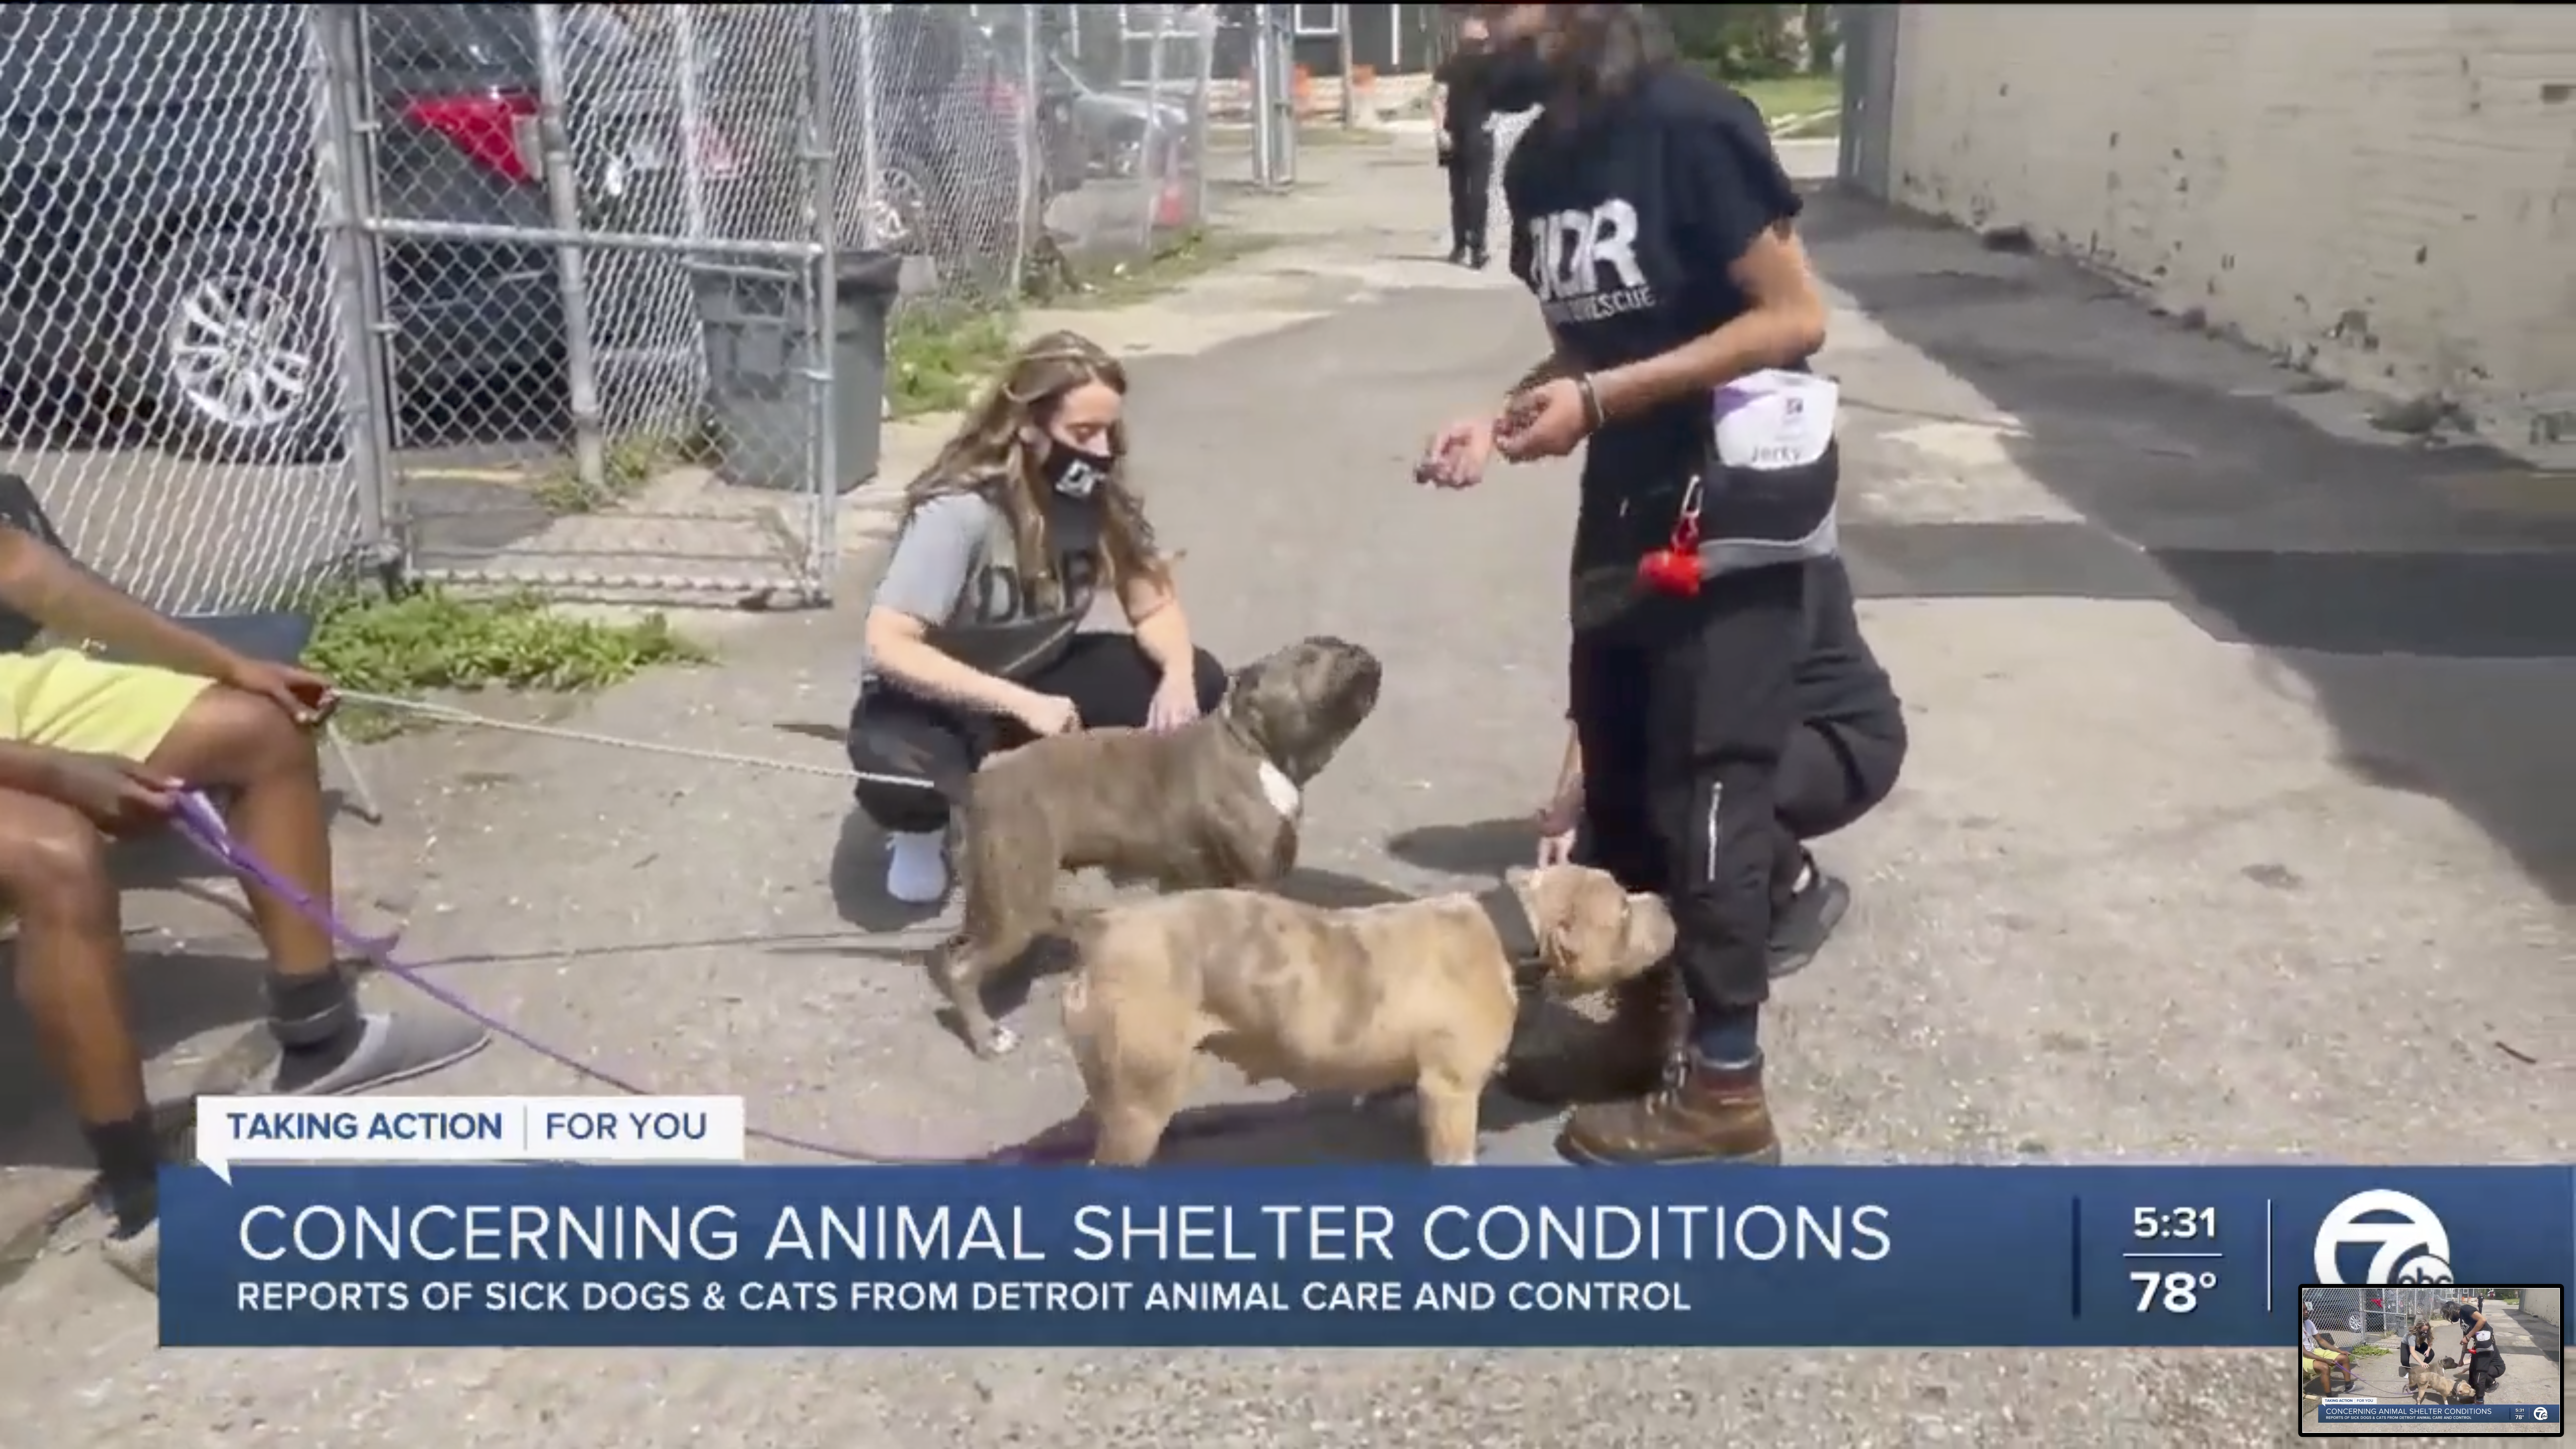 Head of Detroit Dog Rescue urges changes amid sick dogs, cats at animal control